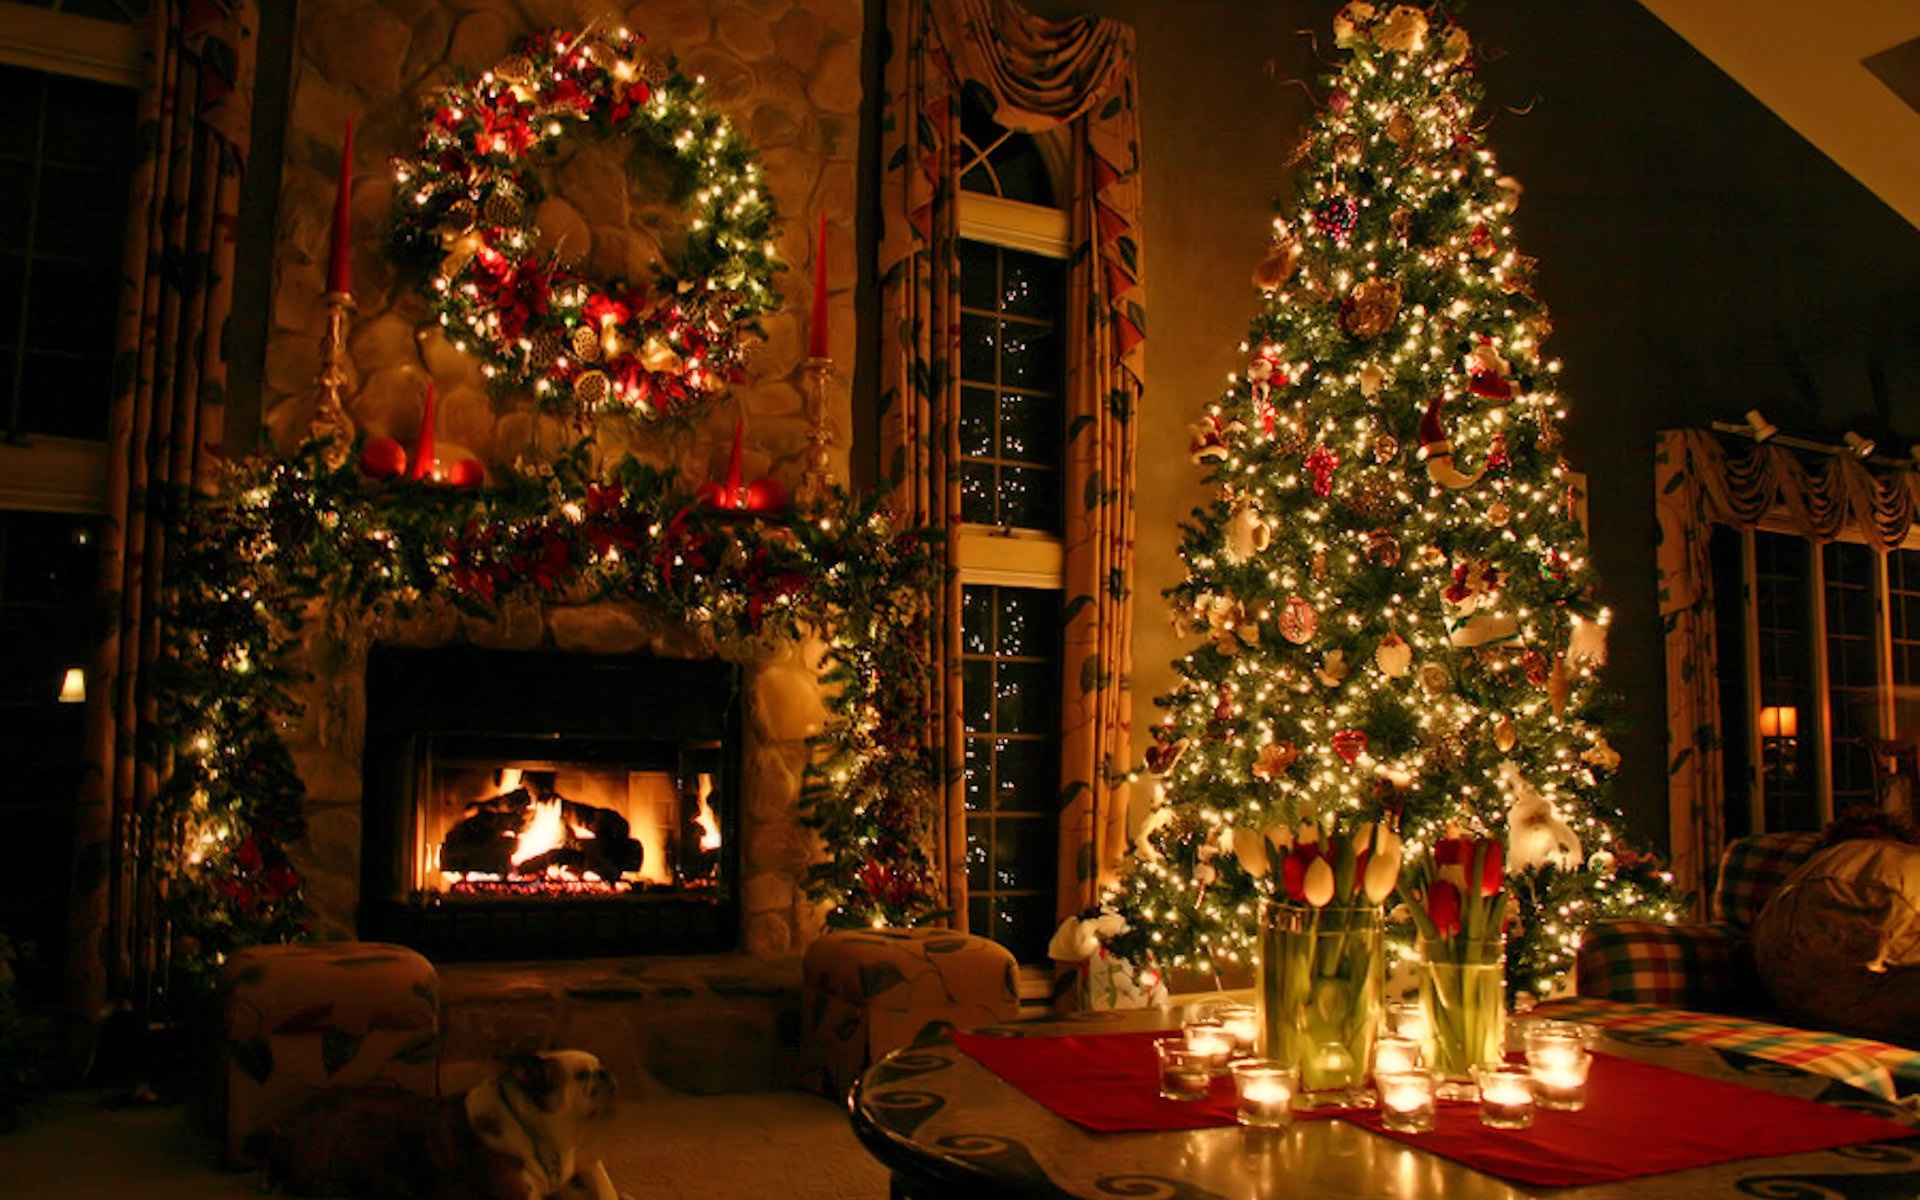 christmas wallpaper 81 1024x640 21 Stunningly Beautiful Christmas Desktop Wallpapers